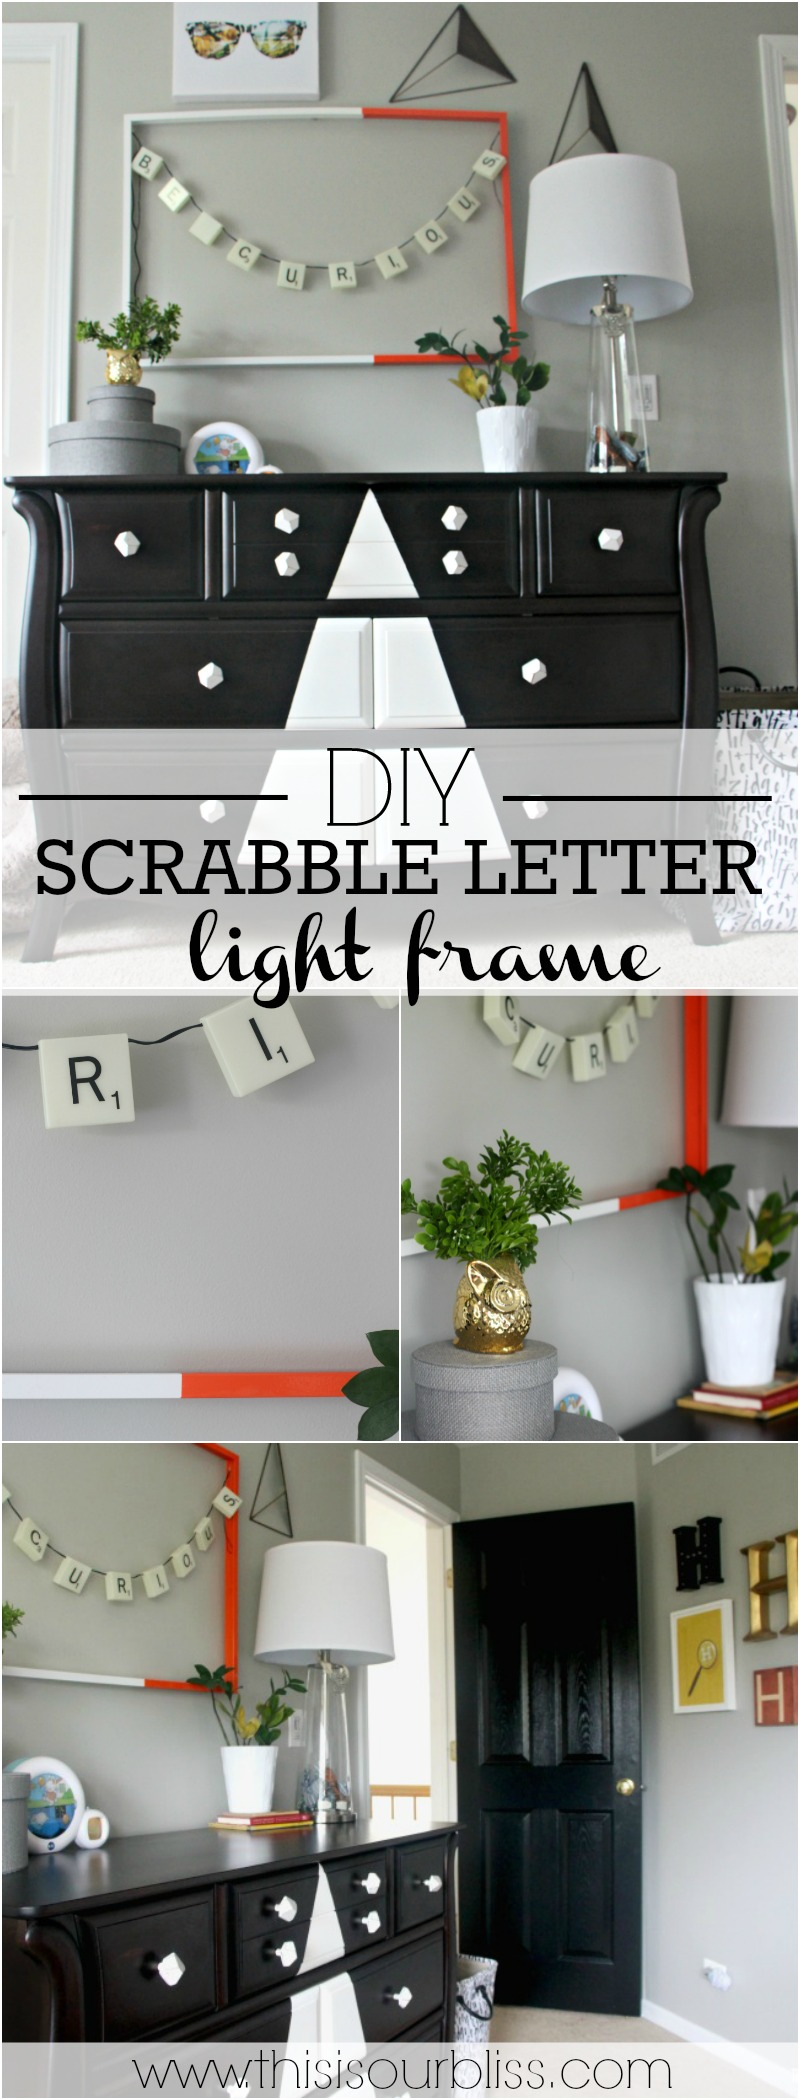 Scrabble Letter Wall Decor Diy Scrabble Letter Light Frame Be Curious This Is Our Bliss